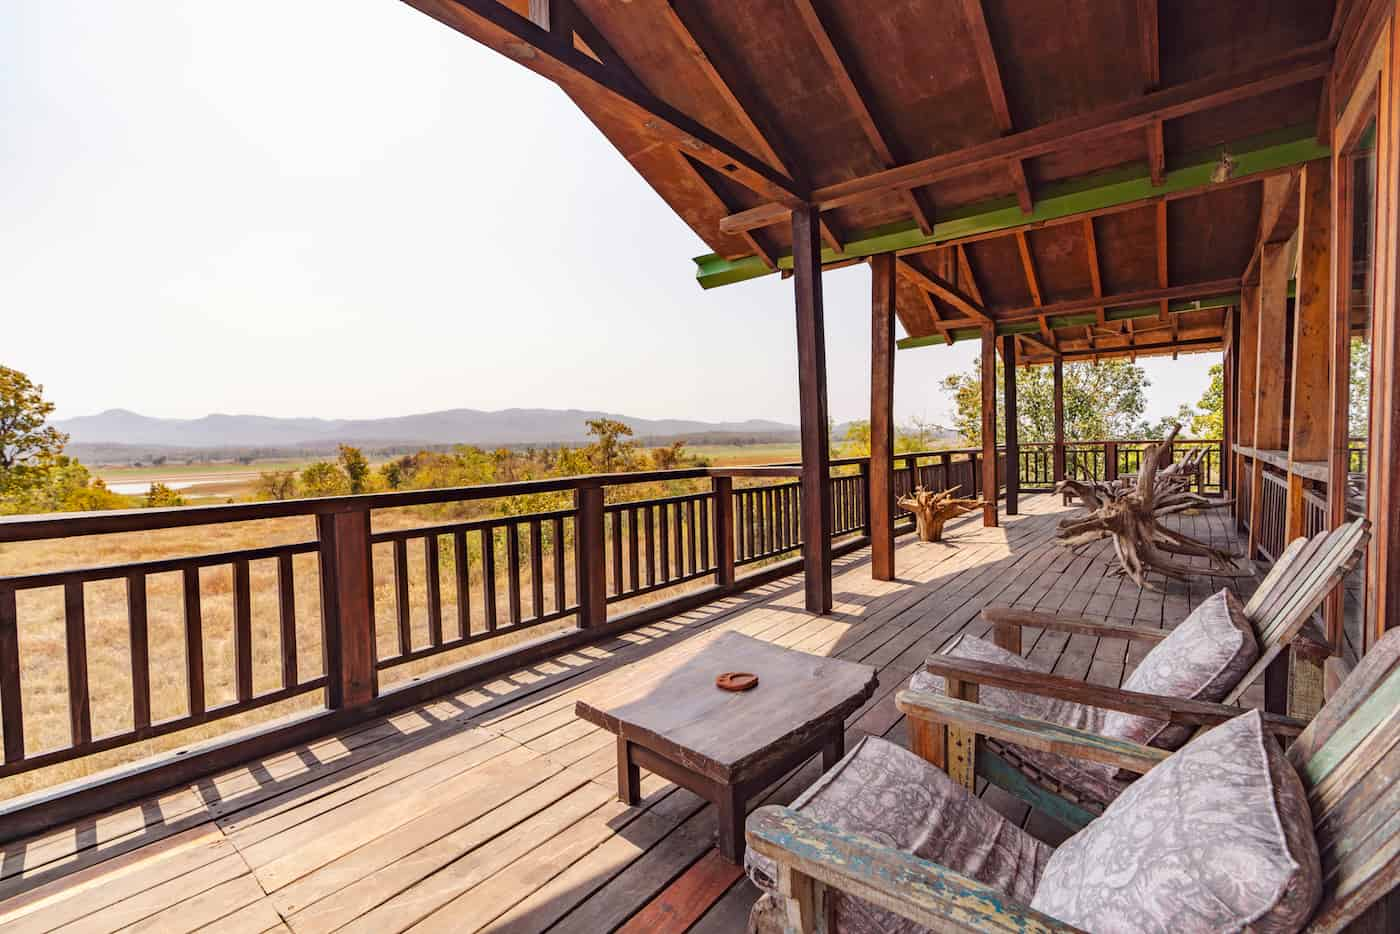 Best jungle lodges in India